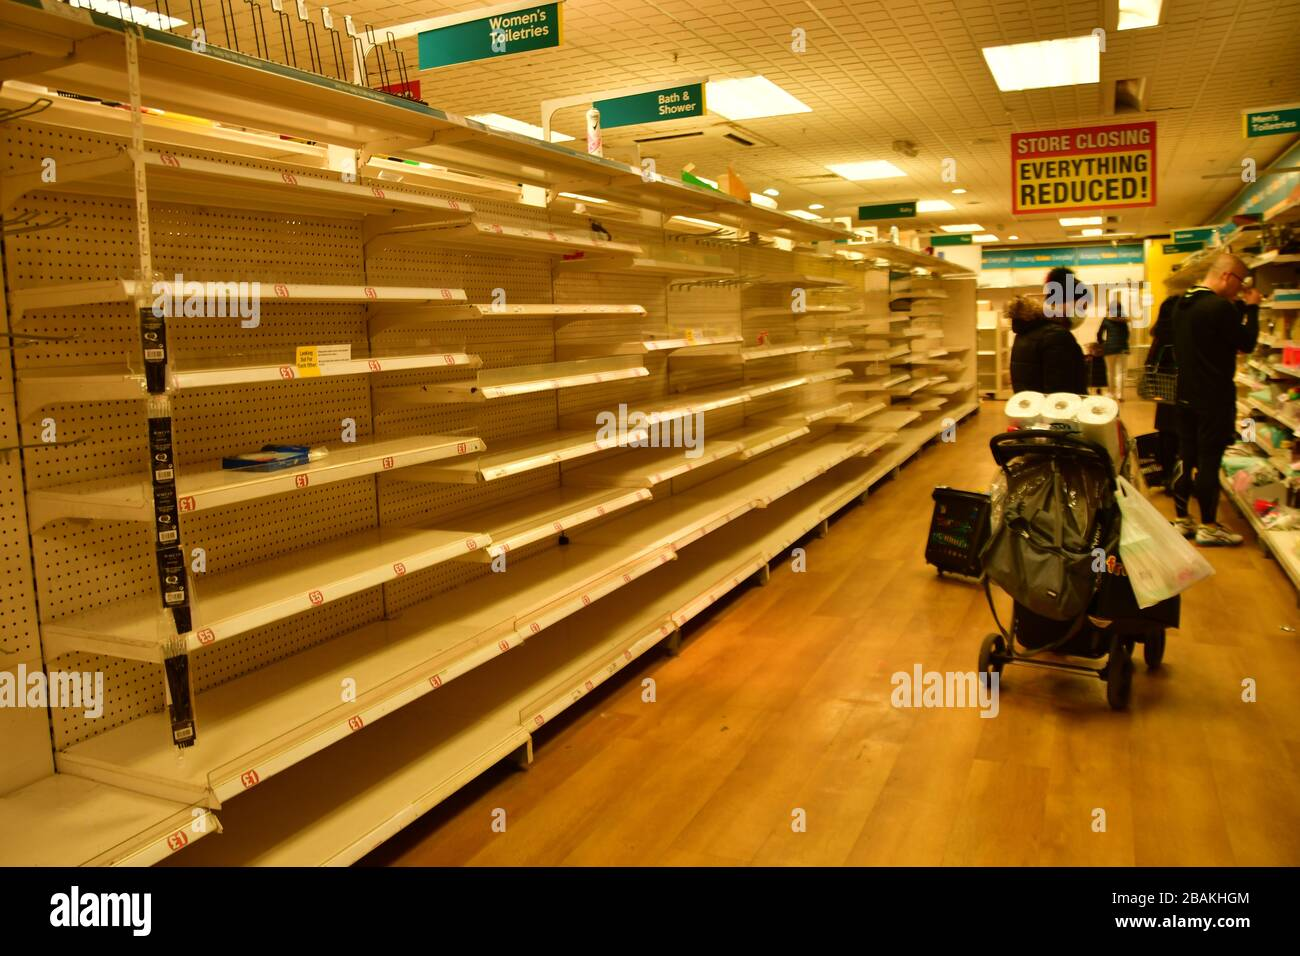 London, UK. 28th March 2020. During the coronavirus in UK lockdown seen people shopping in Poundland shelf empty, at Walthamstow Shopping mall,on 28 March 2020 London. Credit: Picture Capital/Alamy Live News Stock Photo